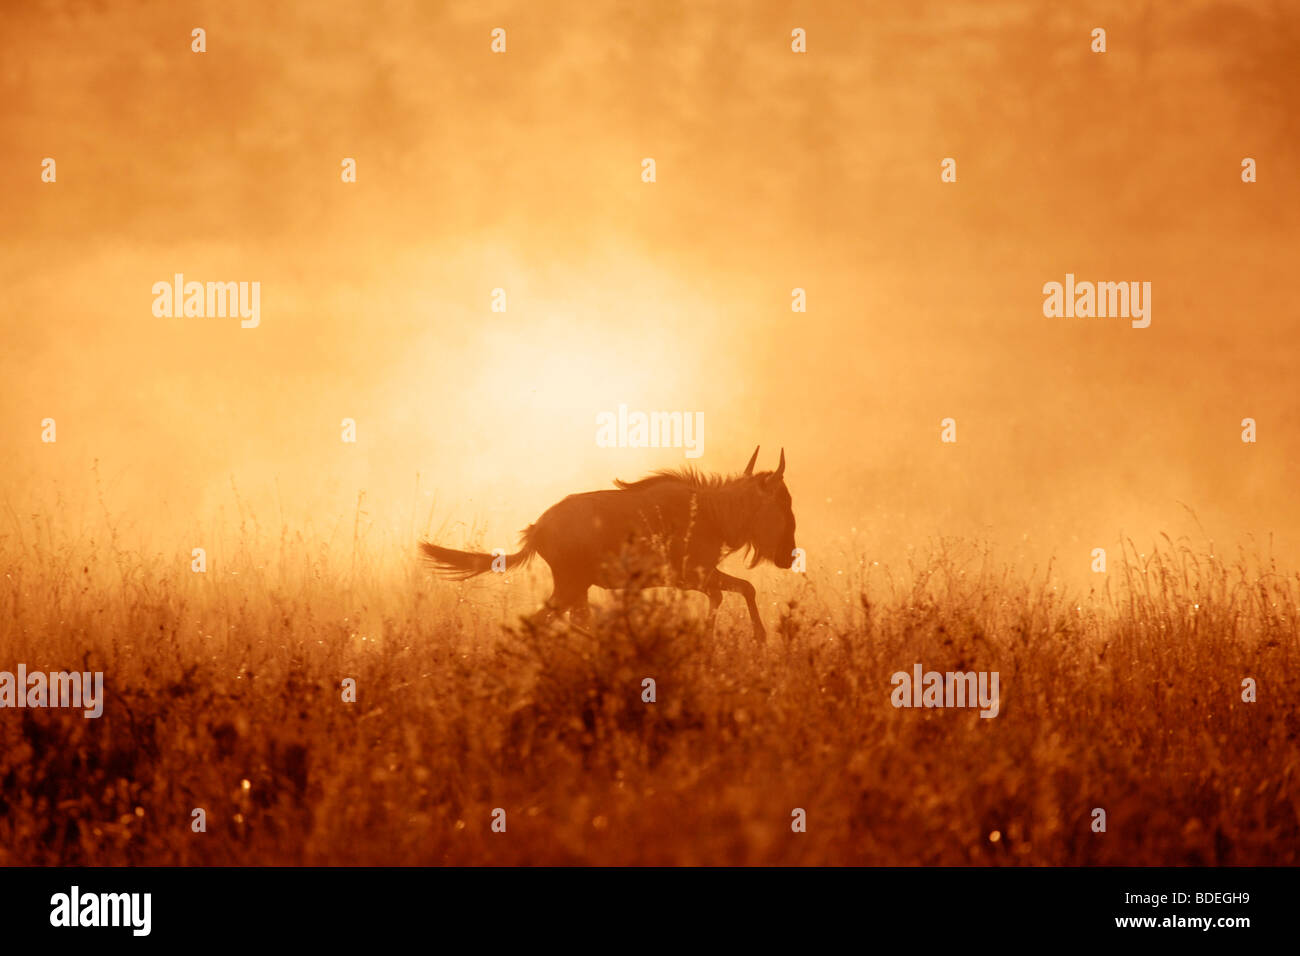 Wildebeest at sunset on the Serengeti plains during the annual migration towards the Masai Mara - Stock Image